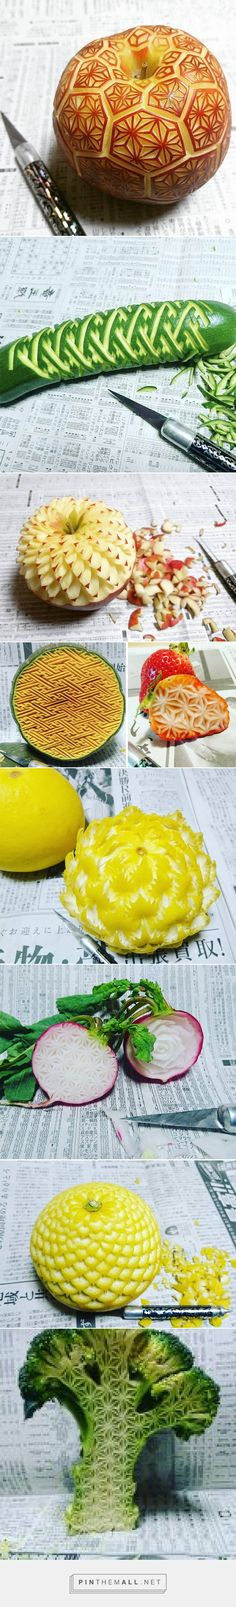 New Elaborate Patterns and Designs Carved on Produce by 'Gaku' | Colossal - created via https://pinthemall.net